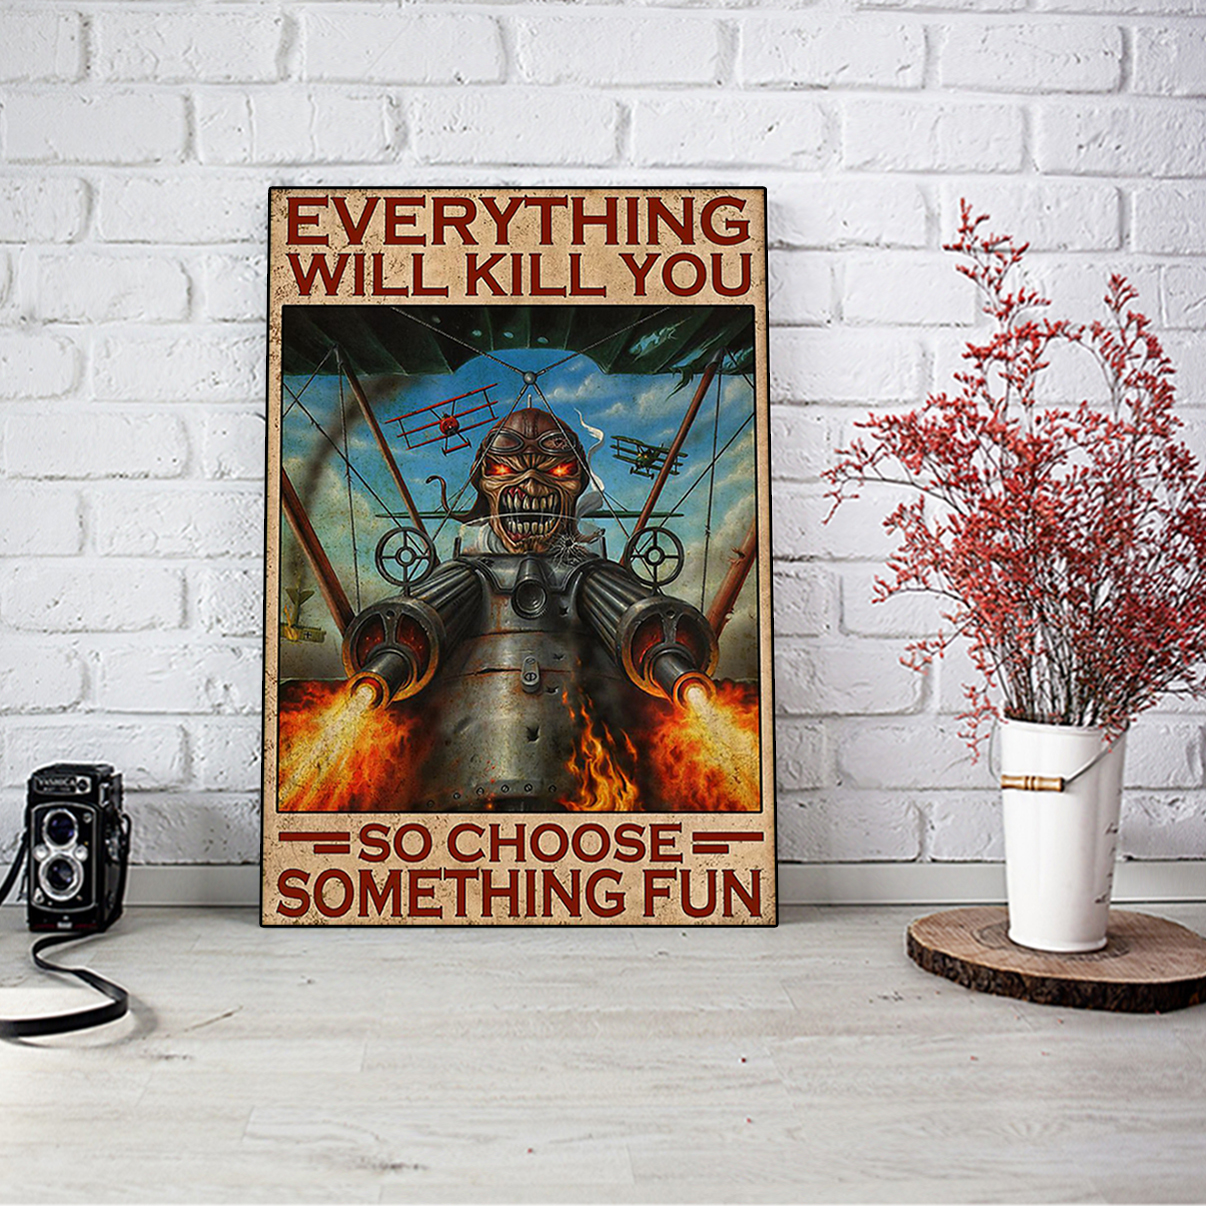 Iron maiden fighter pilot everything will kill you so choose something fun poster A3